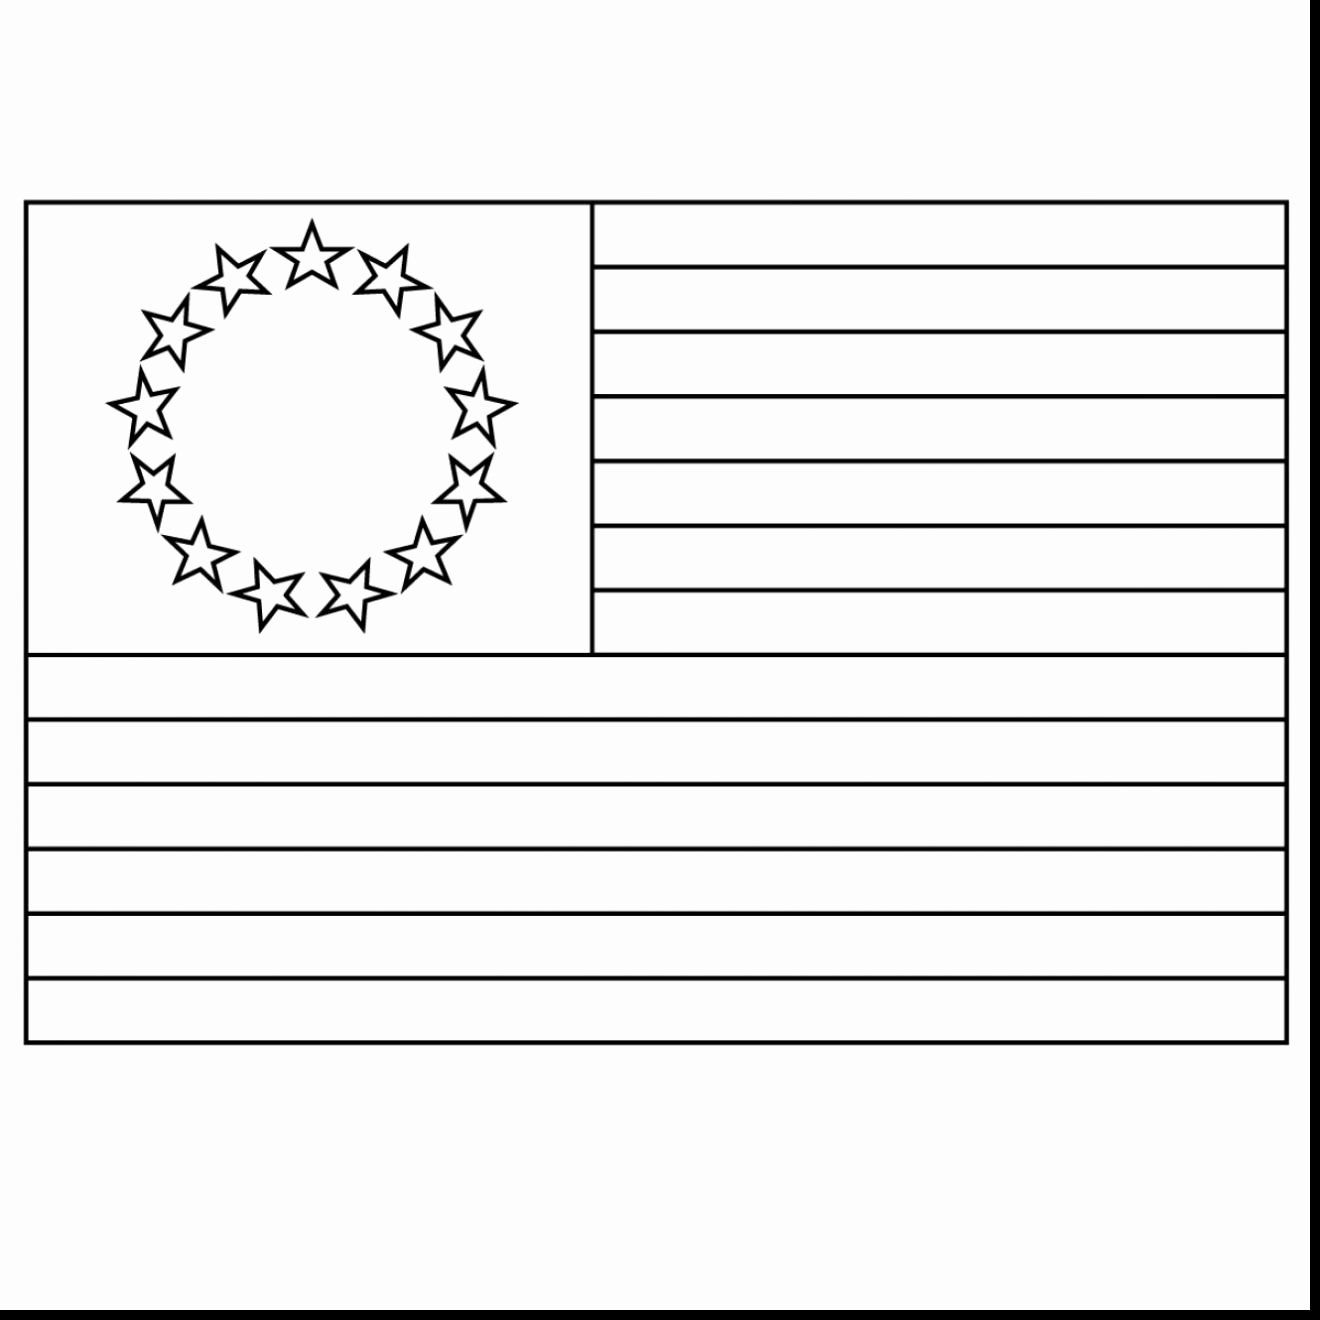 State Flags Coloring Pages Fresh American Flag Coloring Pages